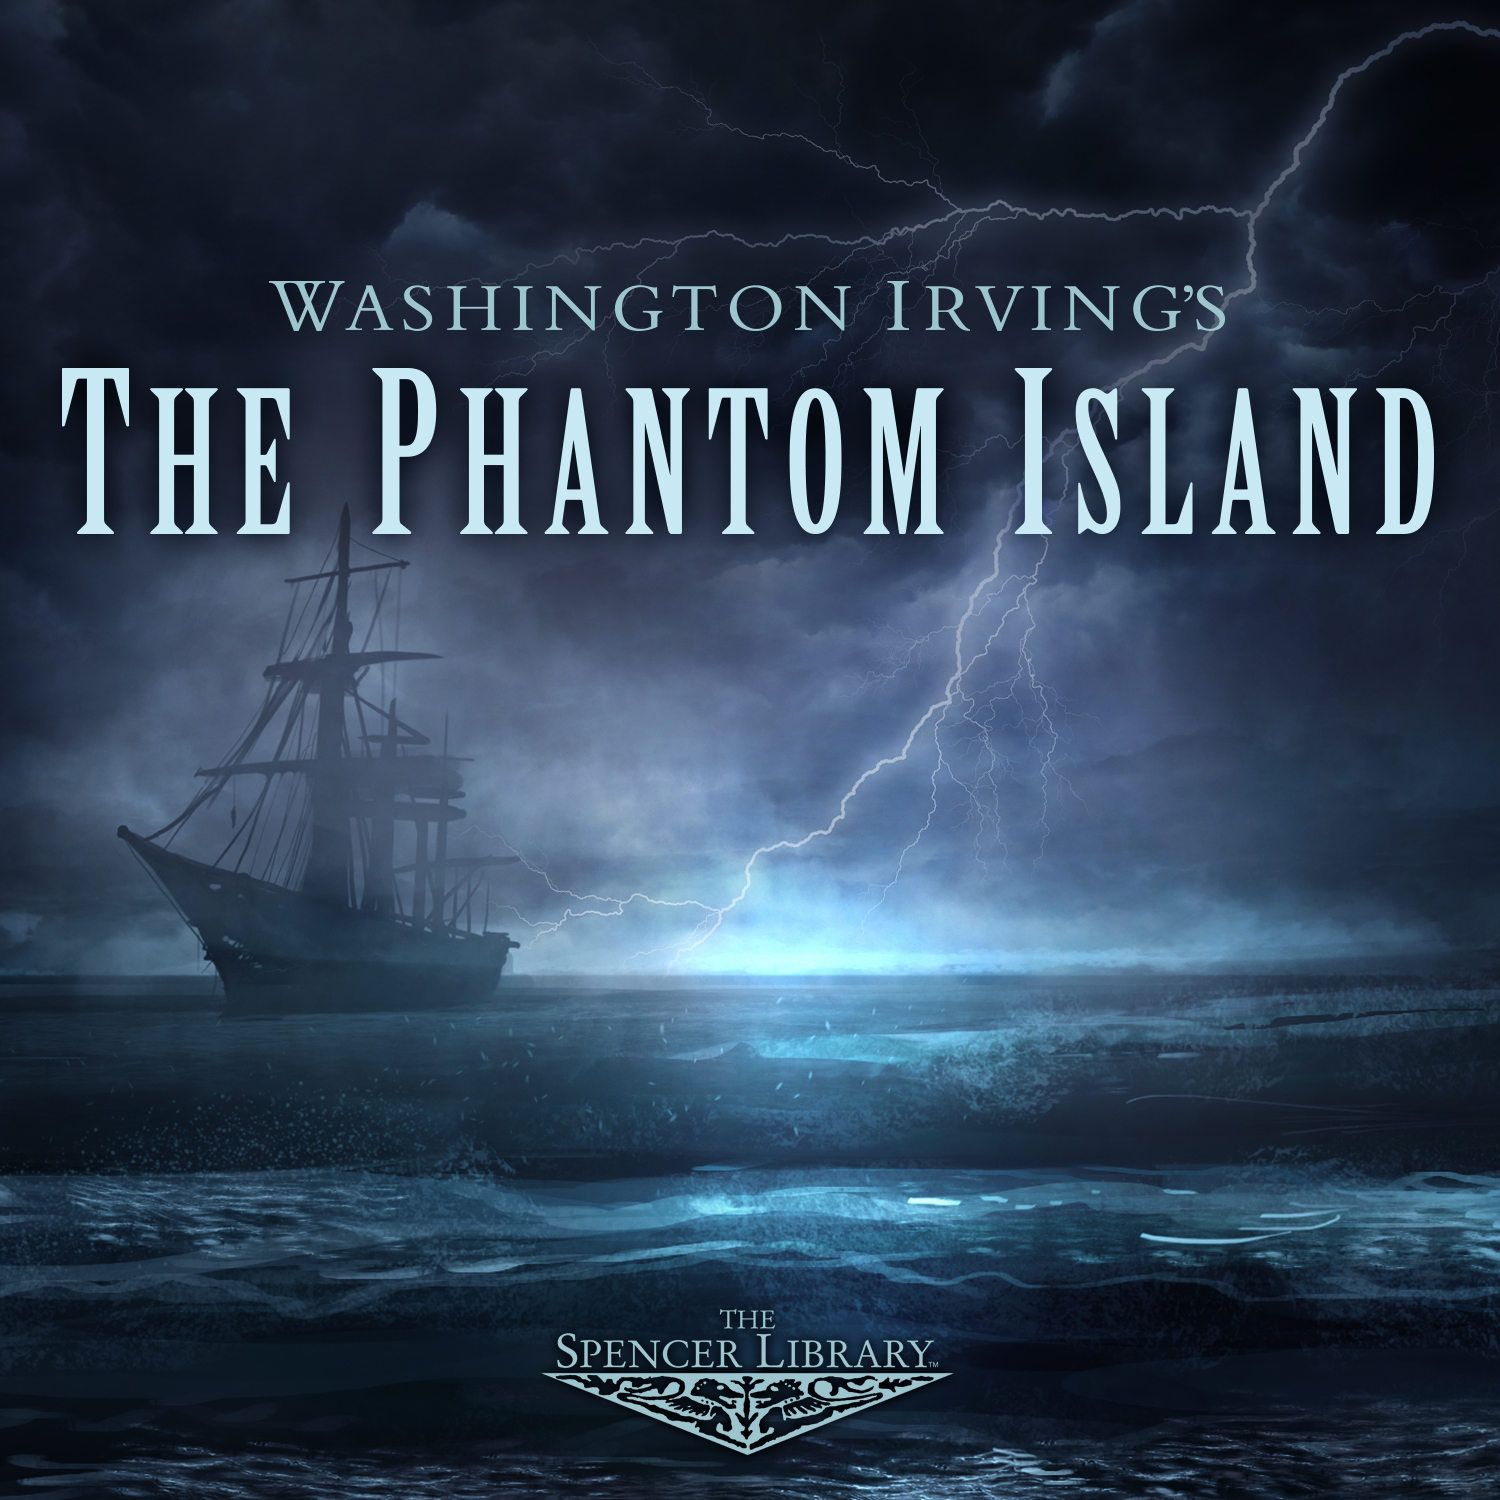 The Phantom Island